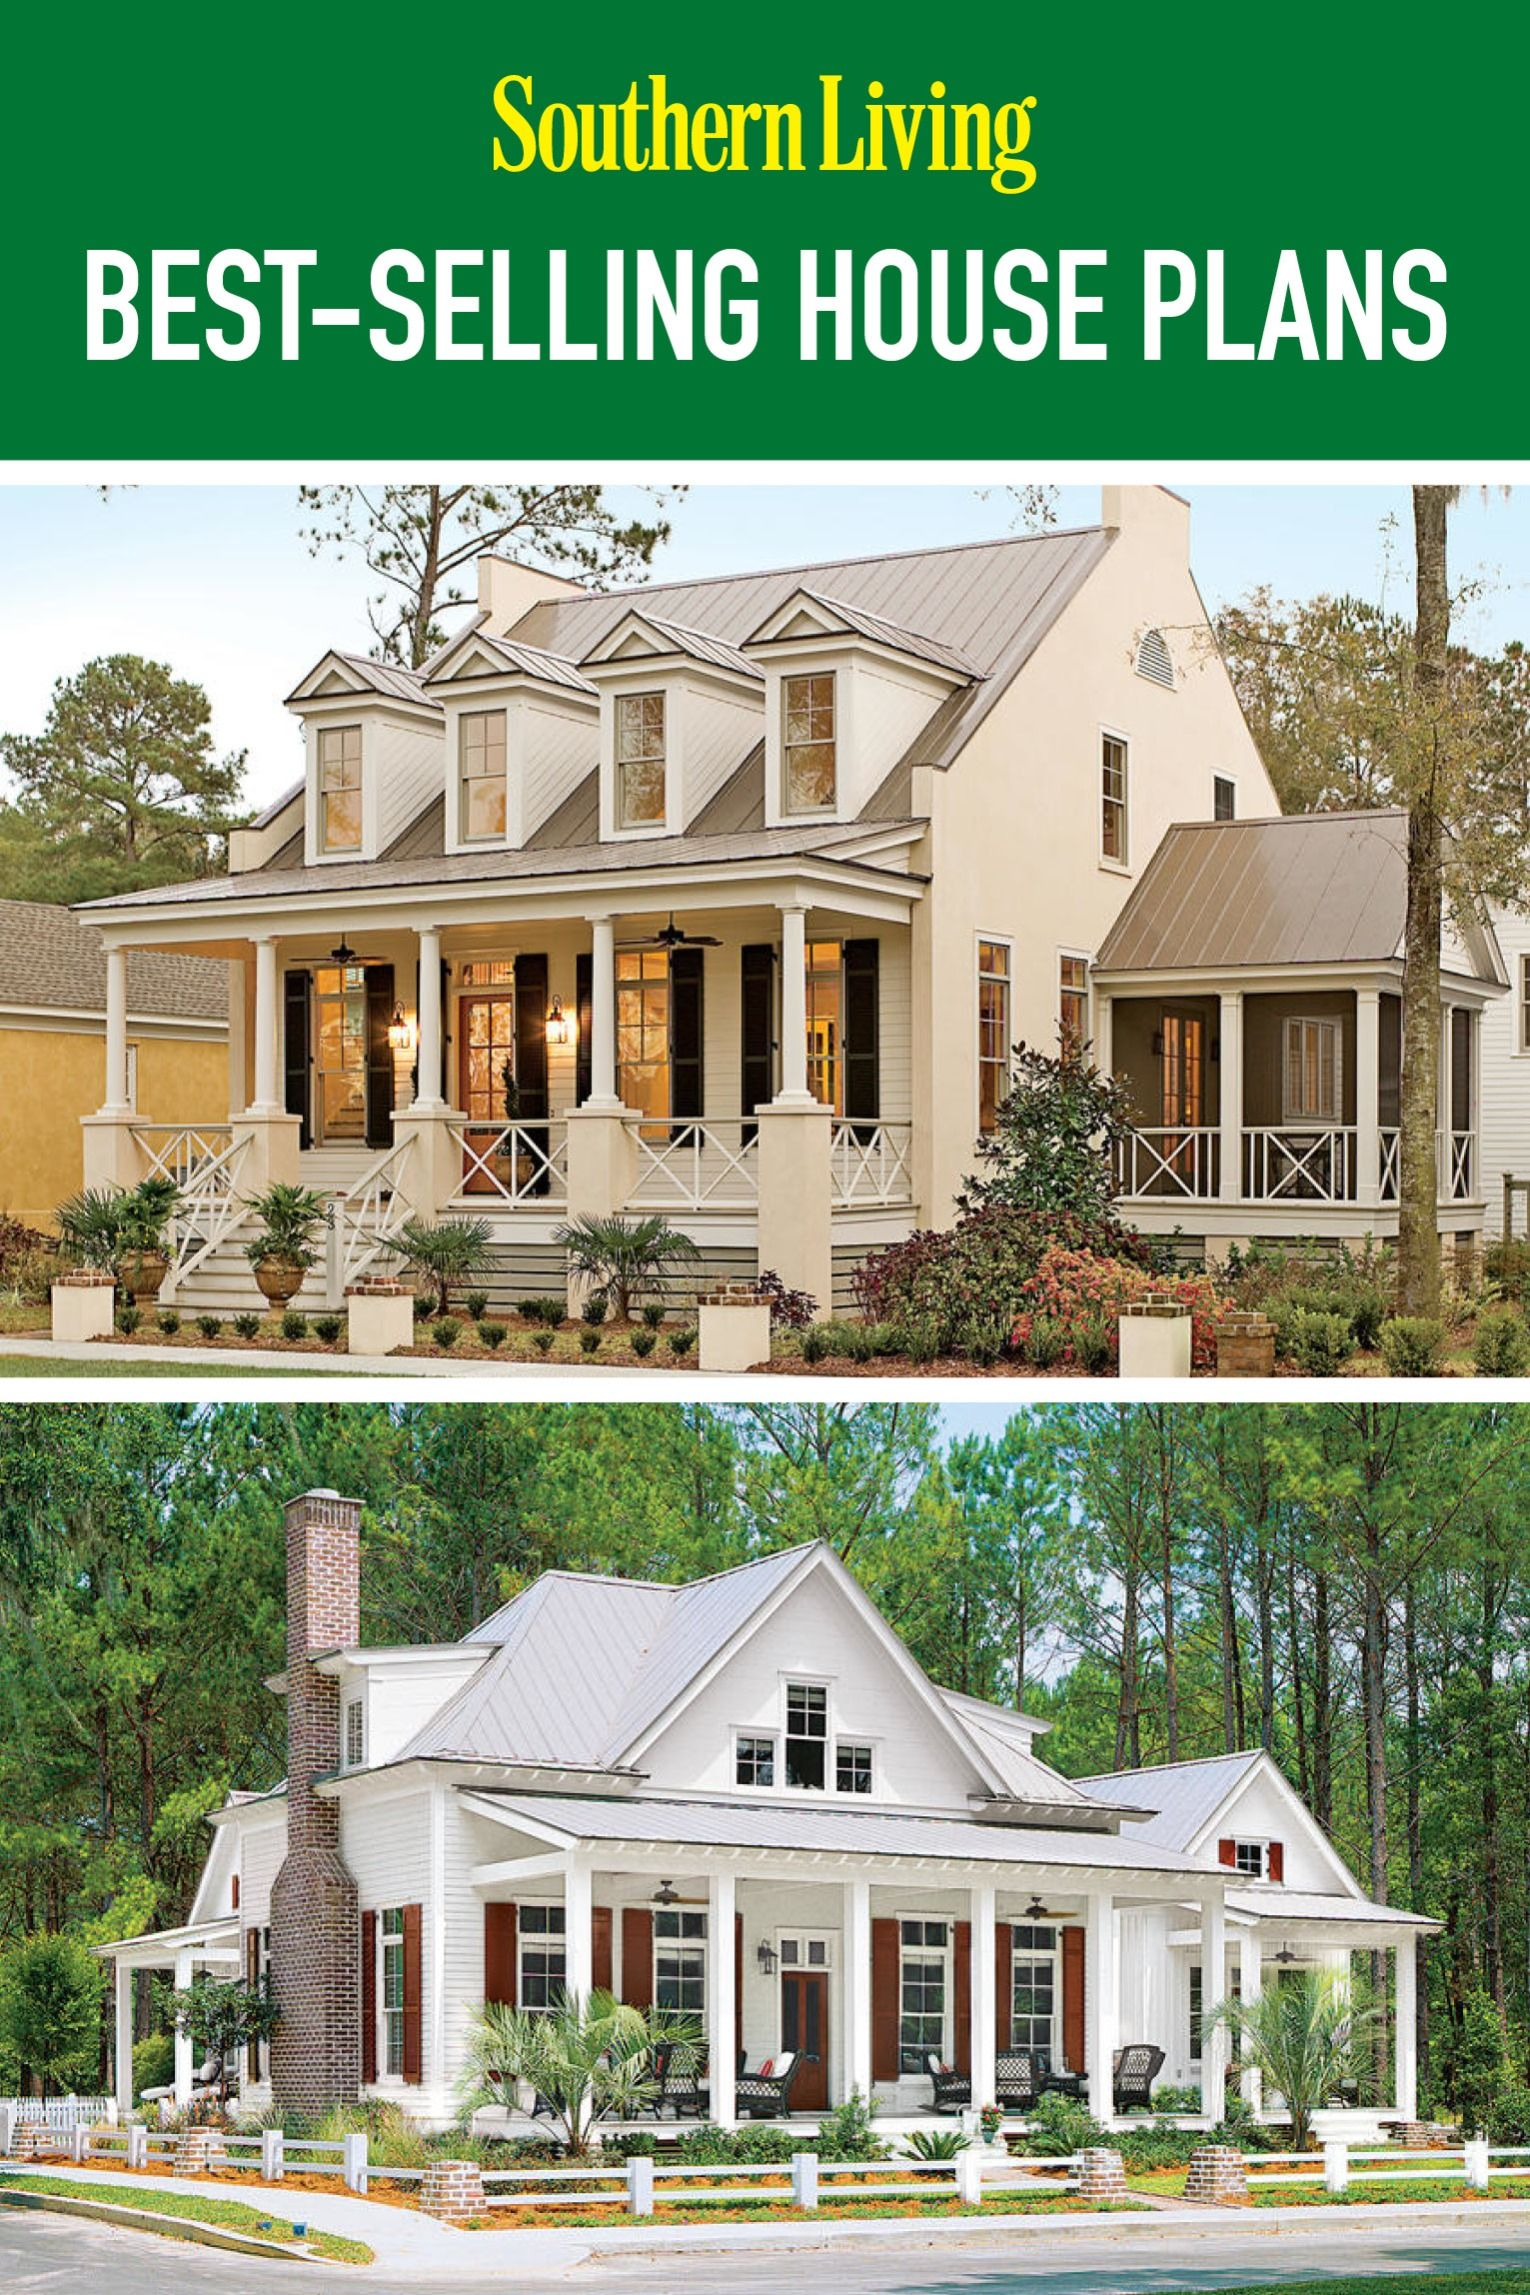 Top 12 Best Selling House Plans Southern House Plans Southern Living House Plans Carriage House Plans